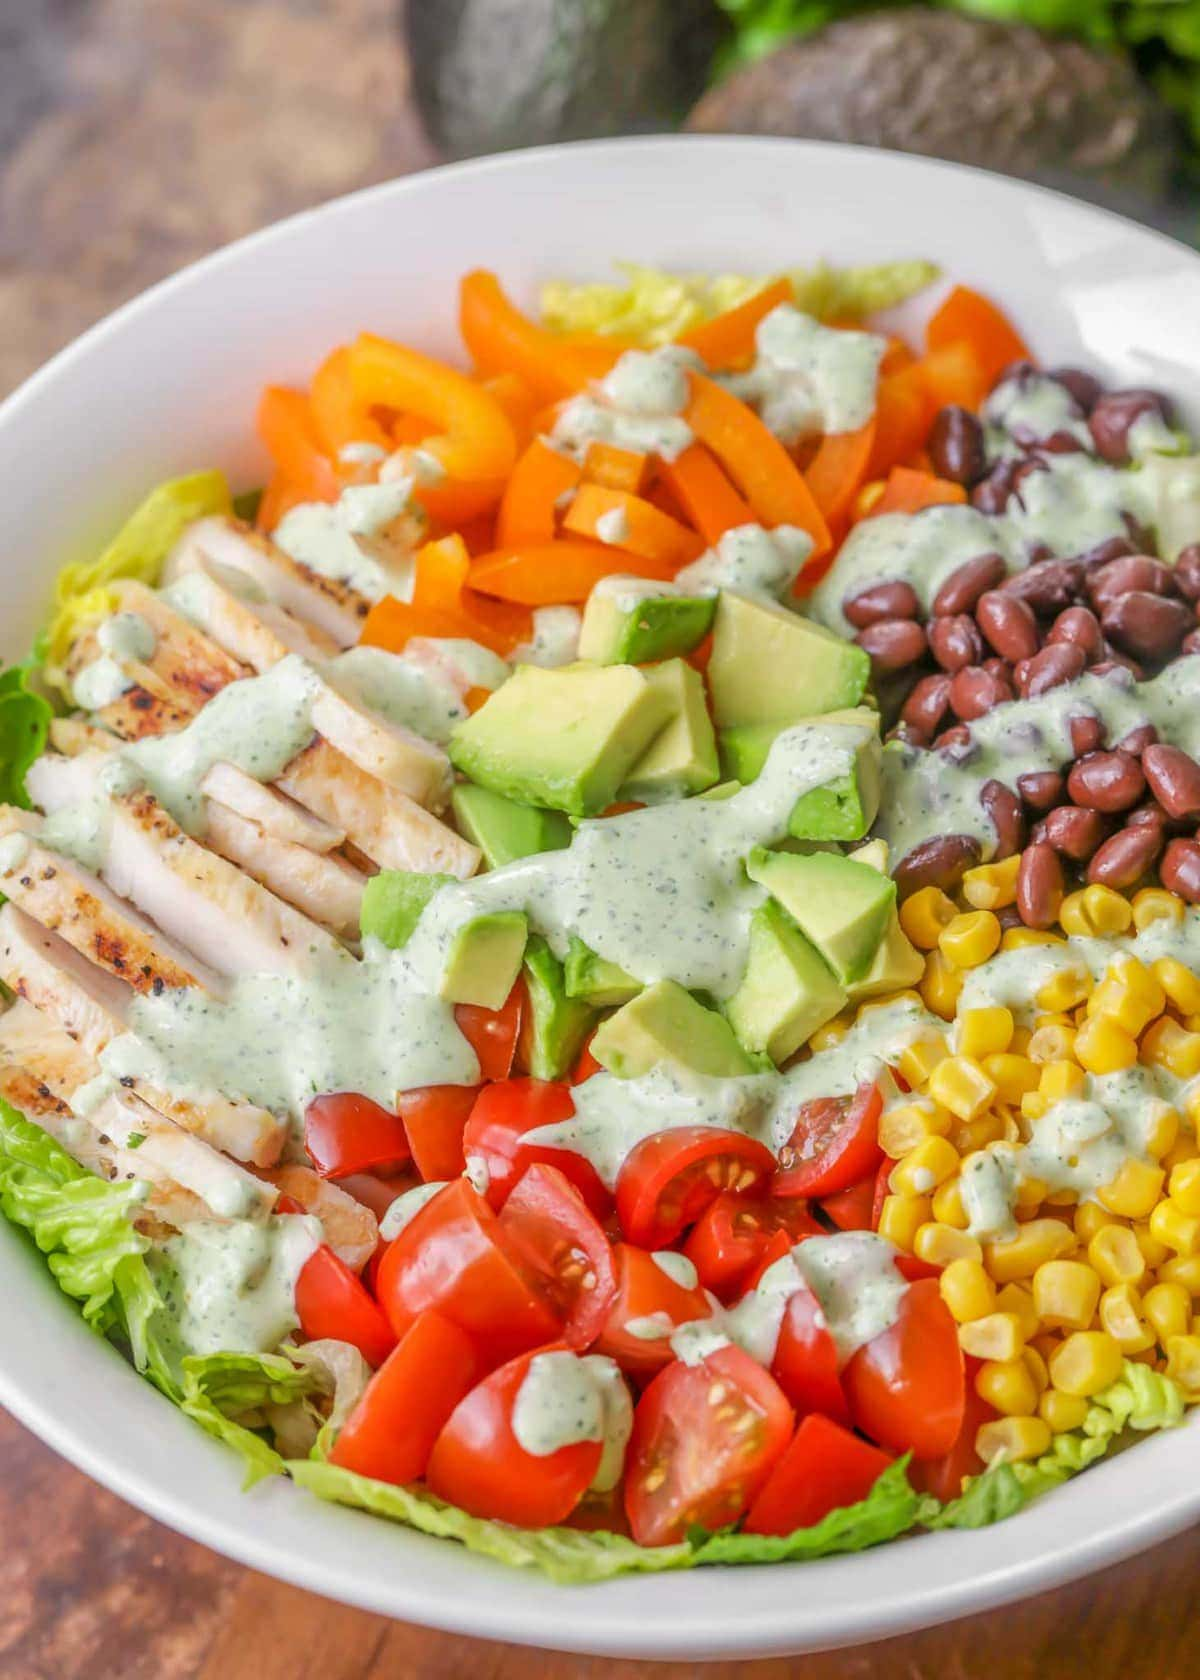 Southwest chopped salad with cilantro ranch dressing